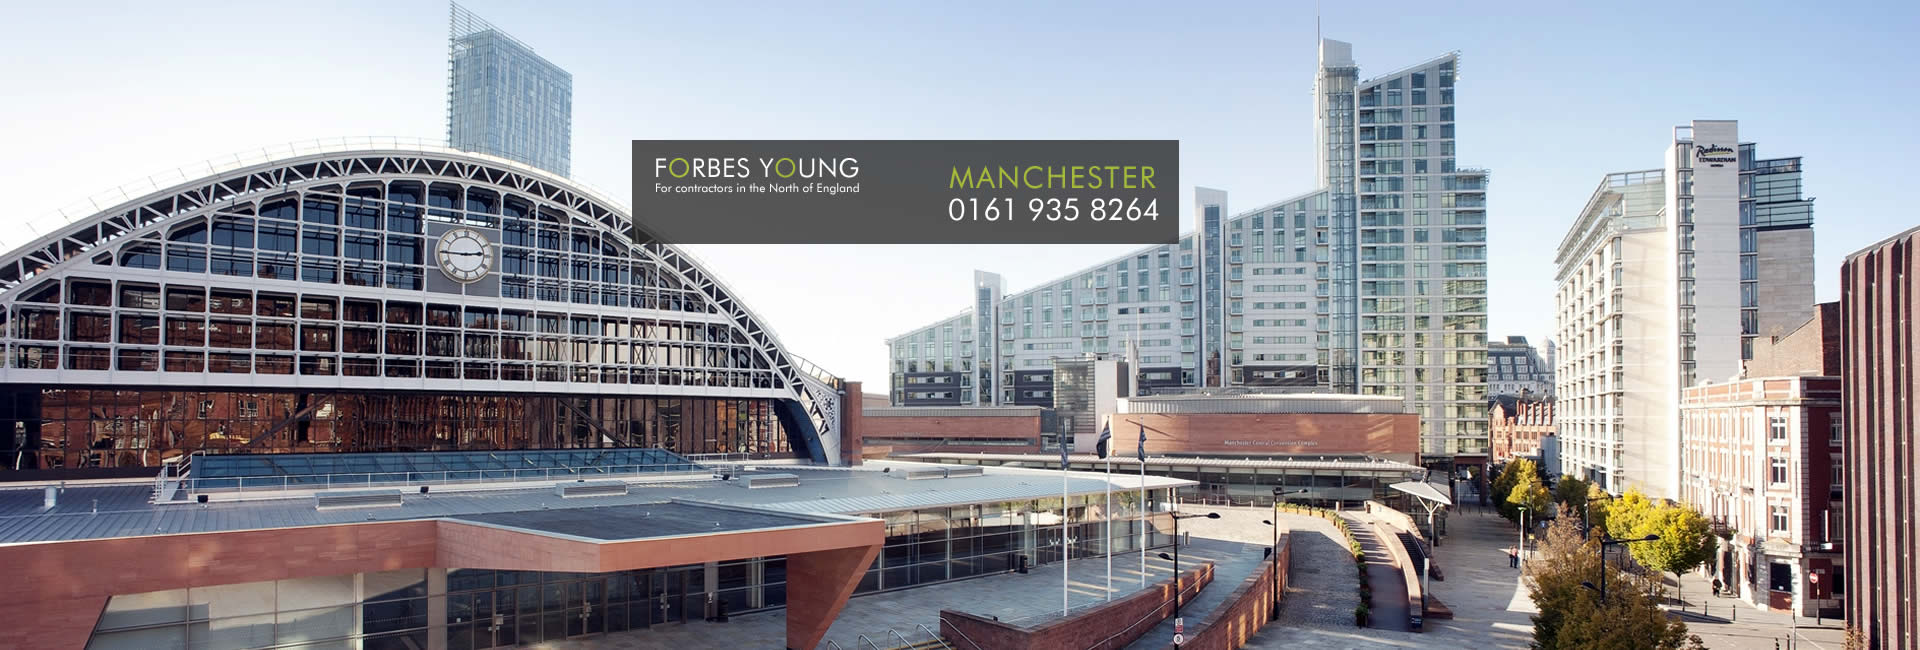 Forbes Young Manchester Contractor Accountants